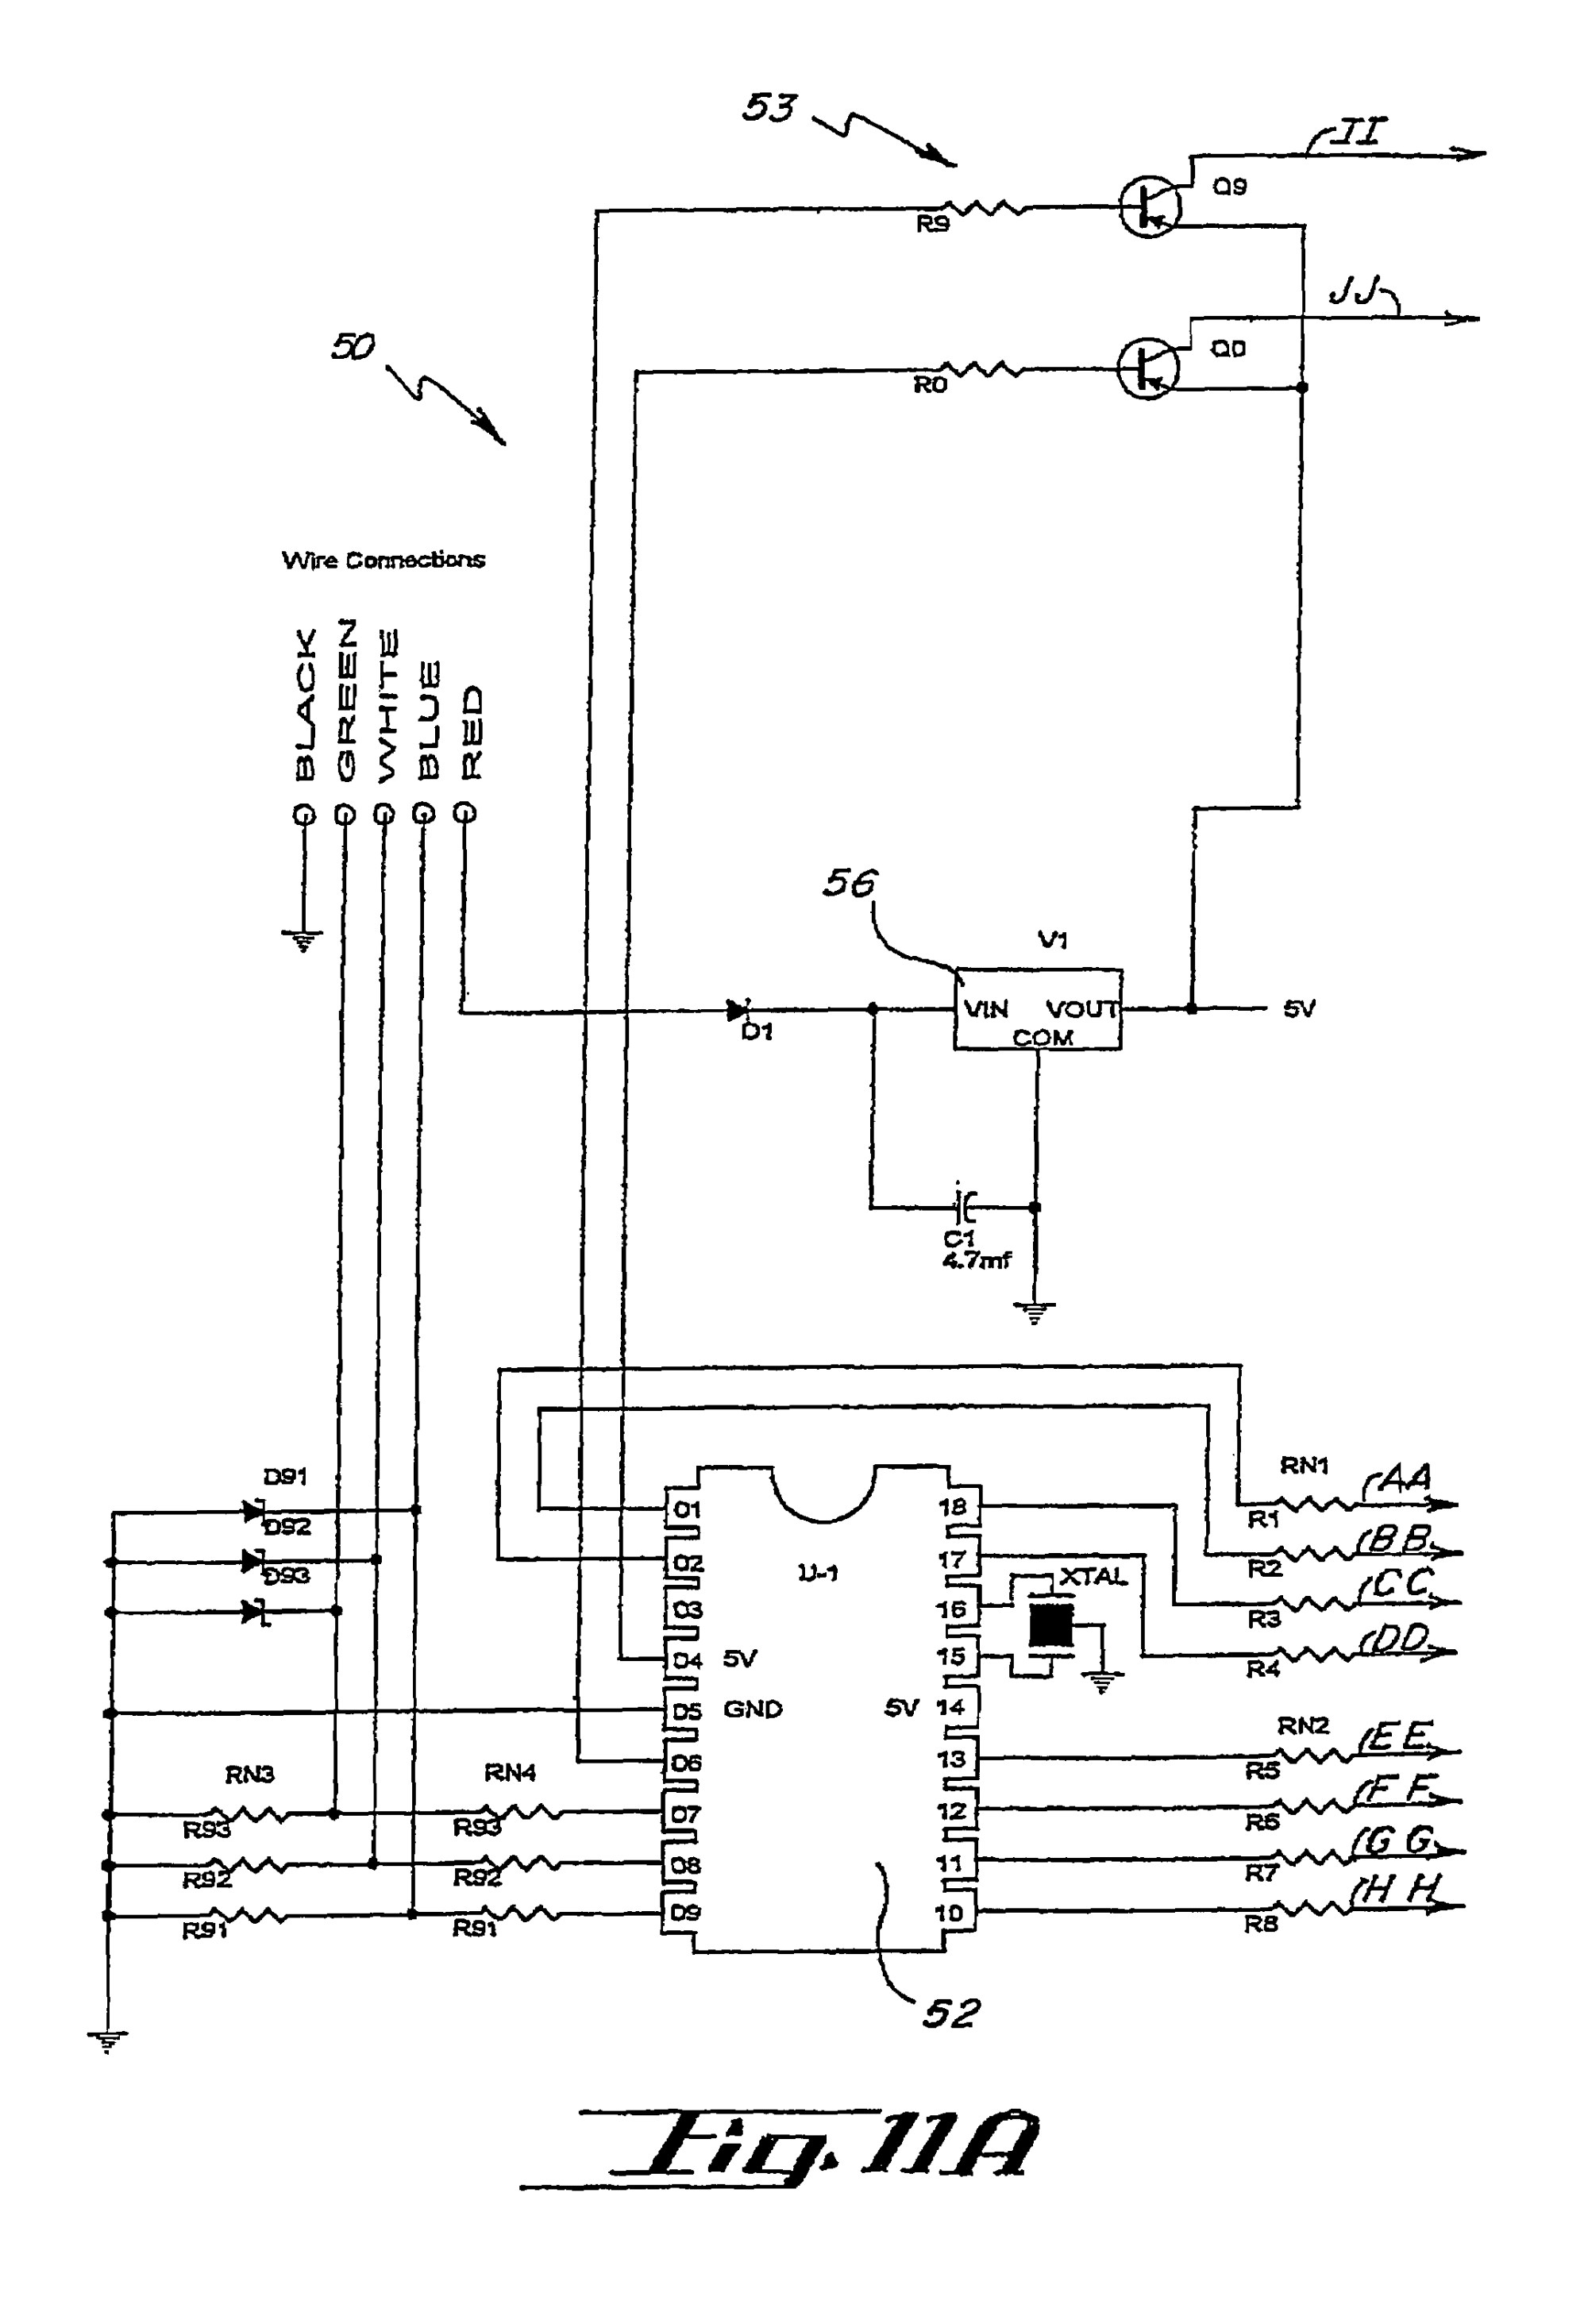 hight resolution of whelen ssf5150d wiring diagram wiring diagram img whelen ssf5150d wiring diagram